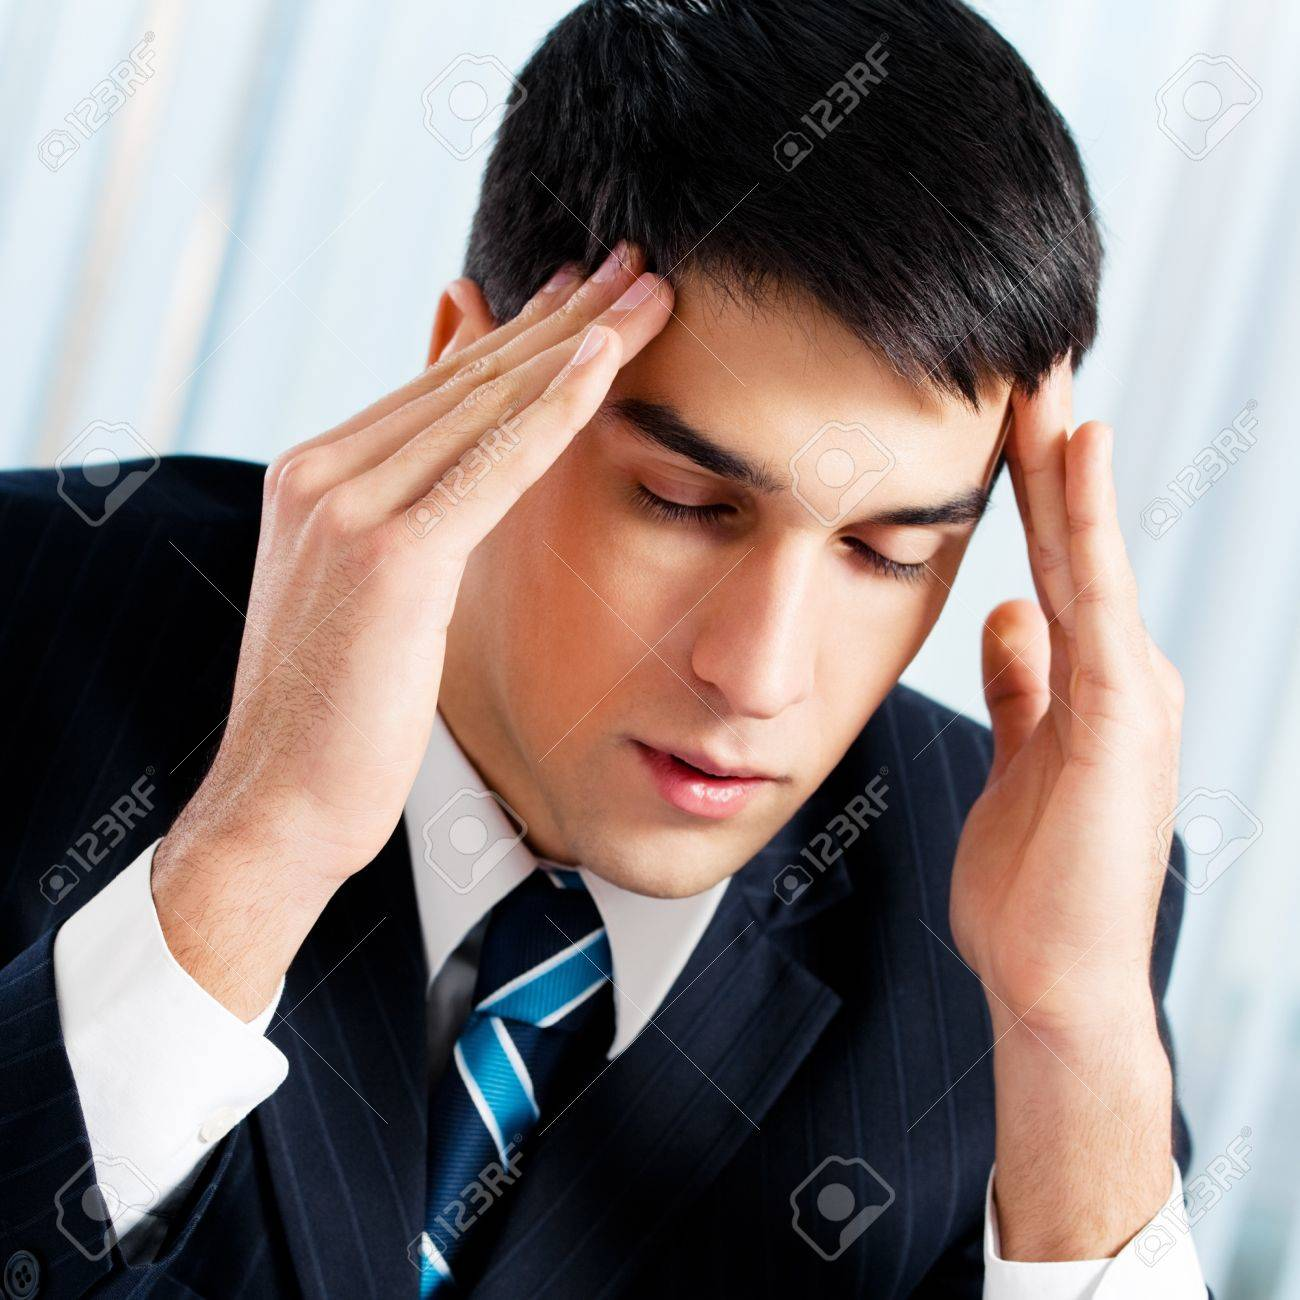 Thinking, tired or ill with headache businessman at office Stock Photo - 18658684